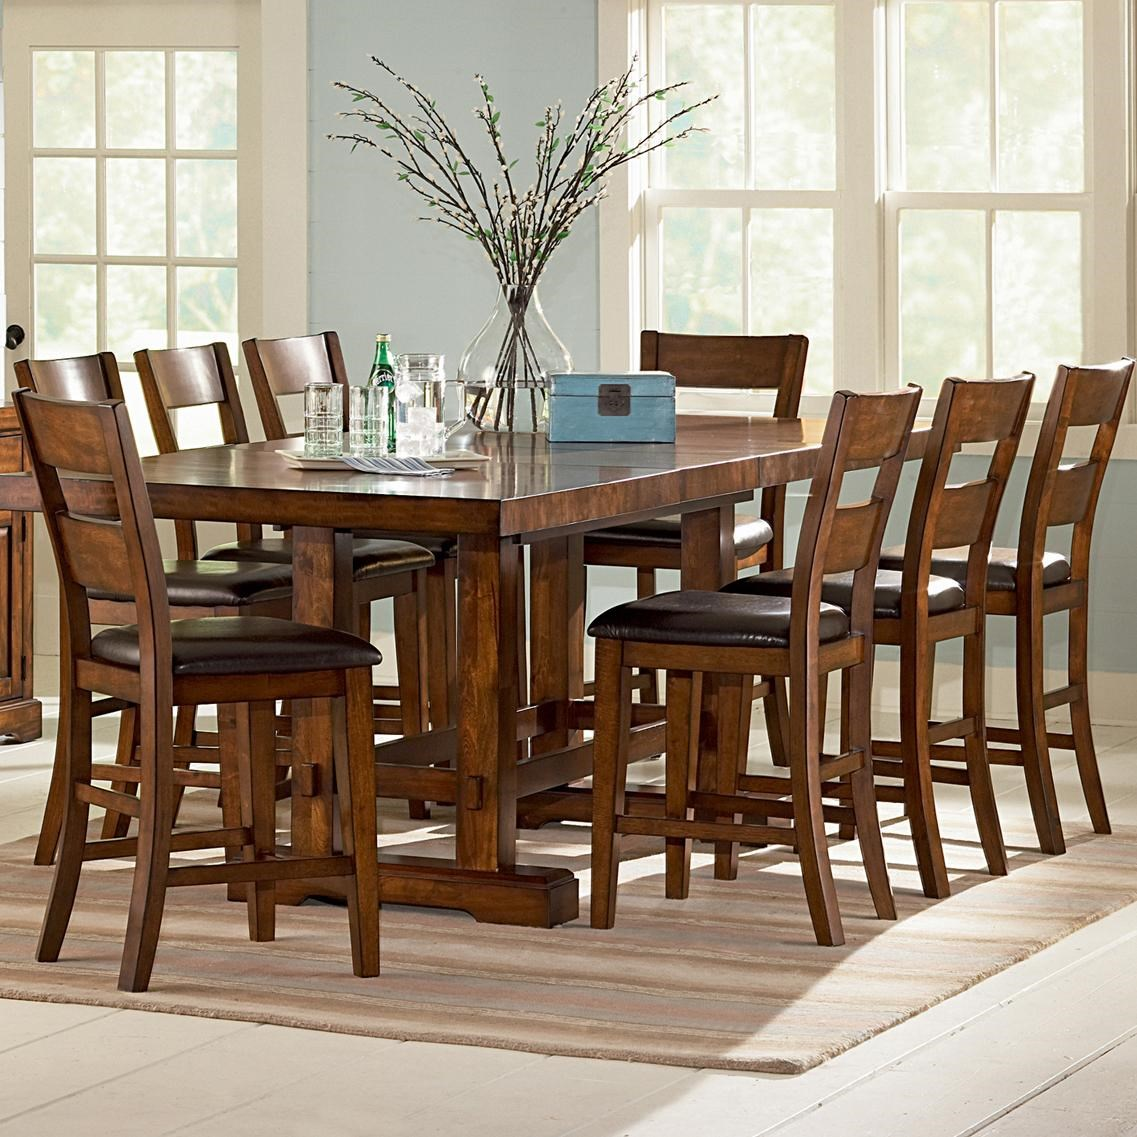 Steve Silver Zappa 9 Piece Counter Height Table \u0026 Chair Set & Steve Silver Zappa 9 Piece Counter Height Table \u0026 Chair Set ...